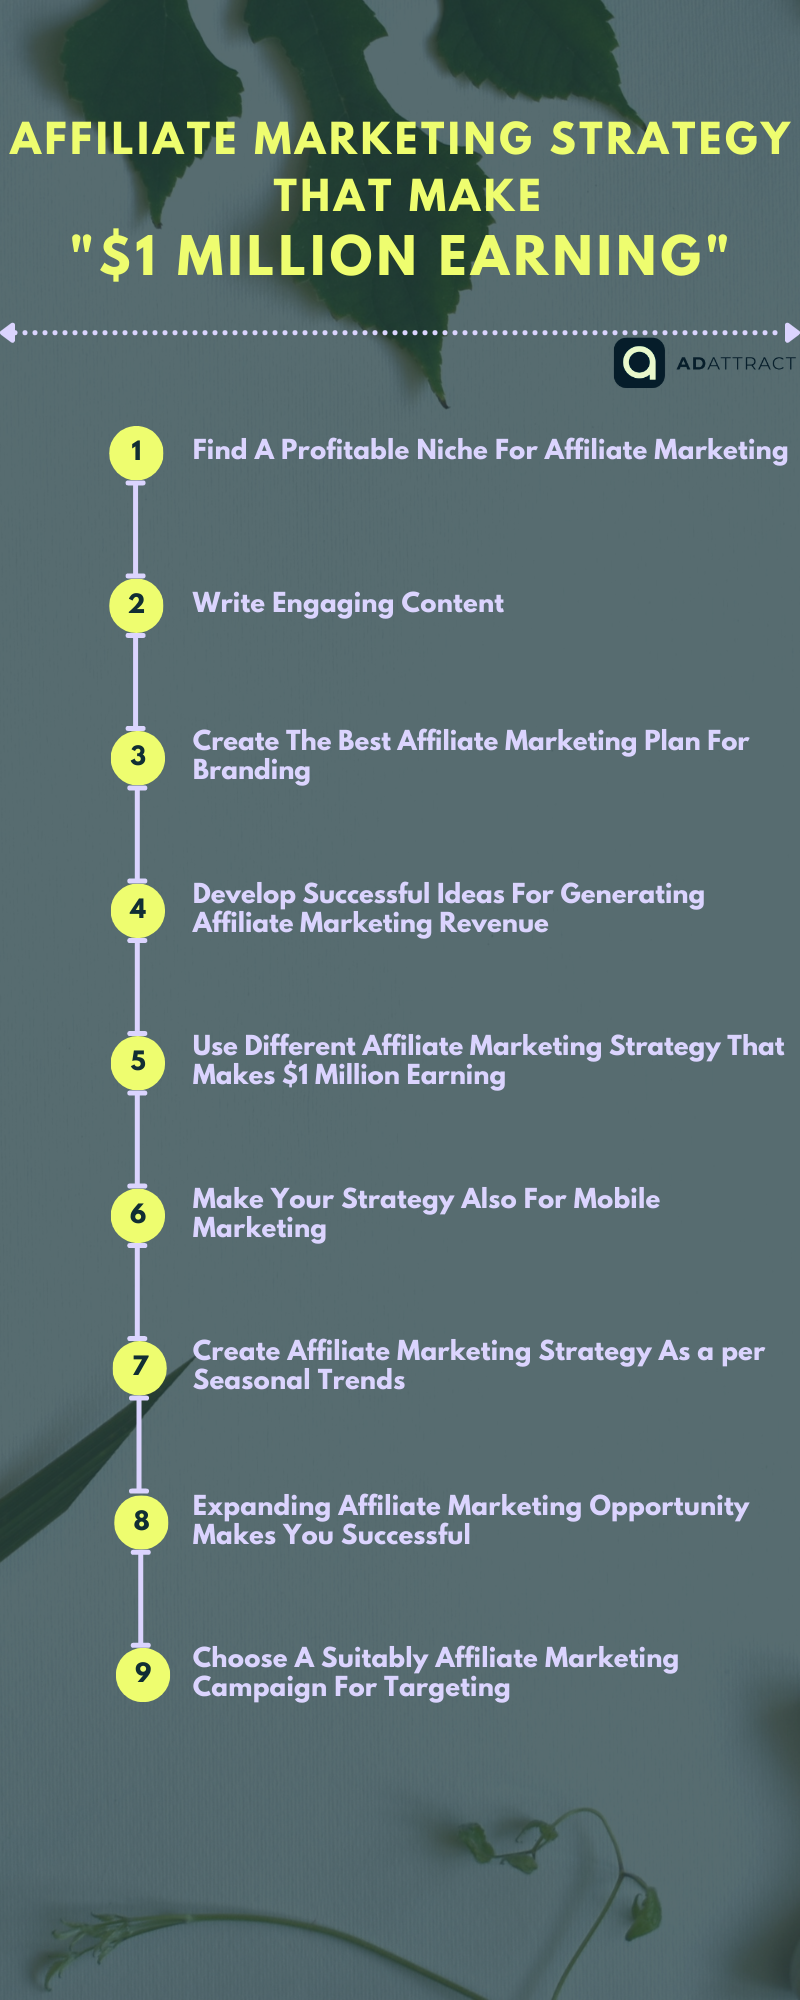 Steps For Affiliate Marketing Strategy